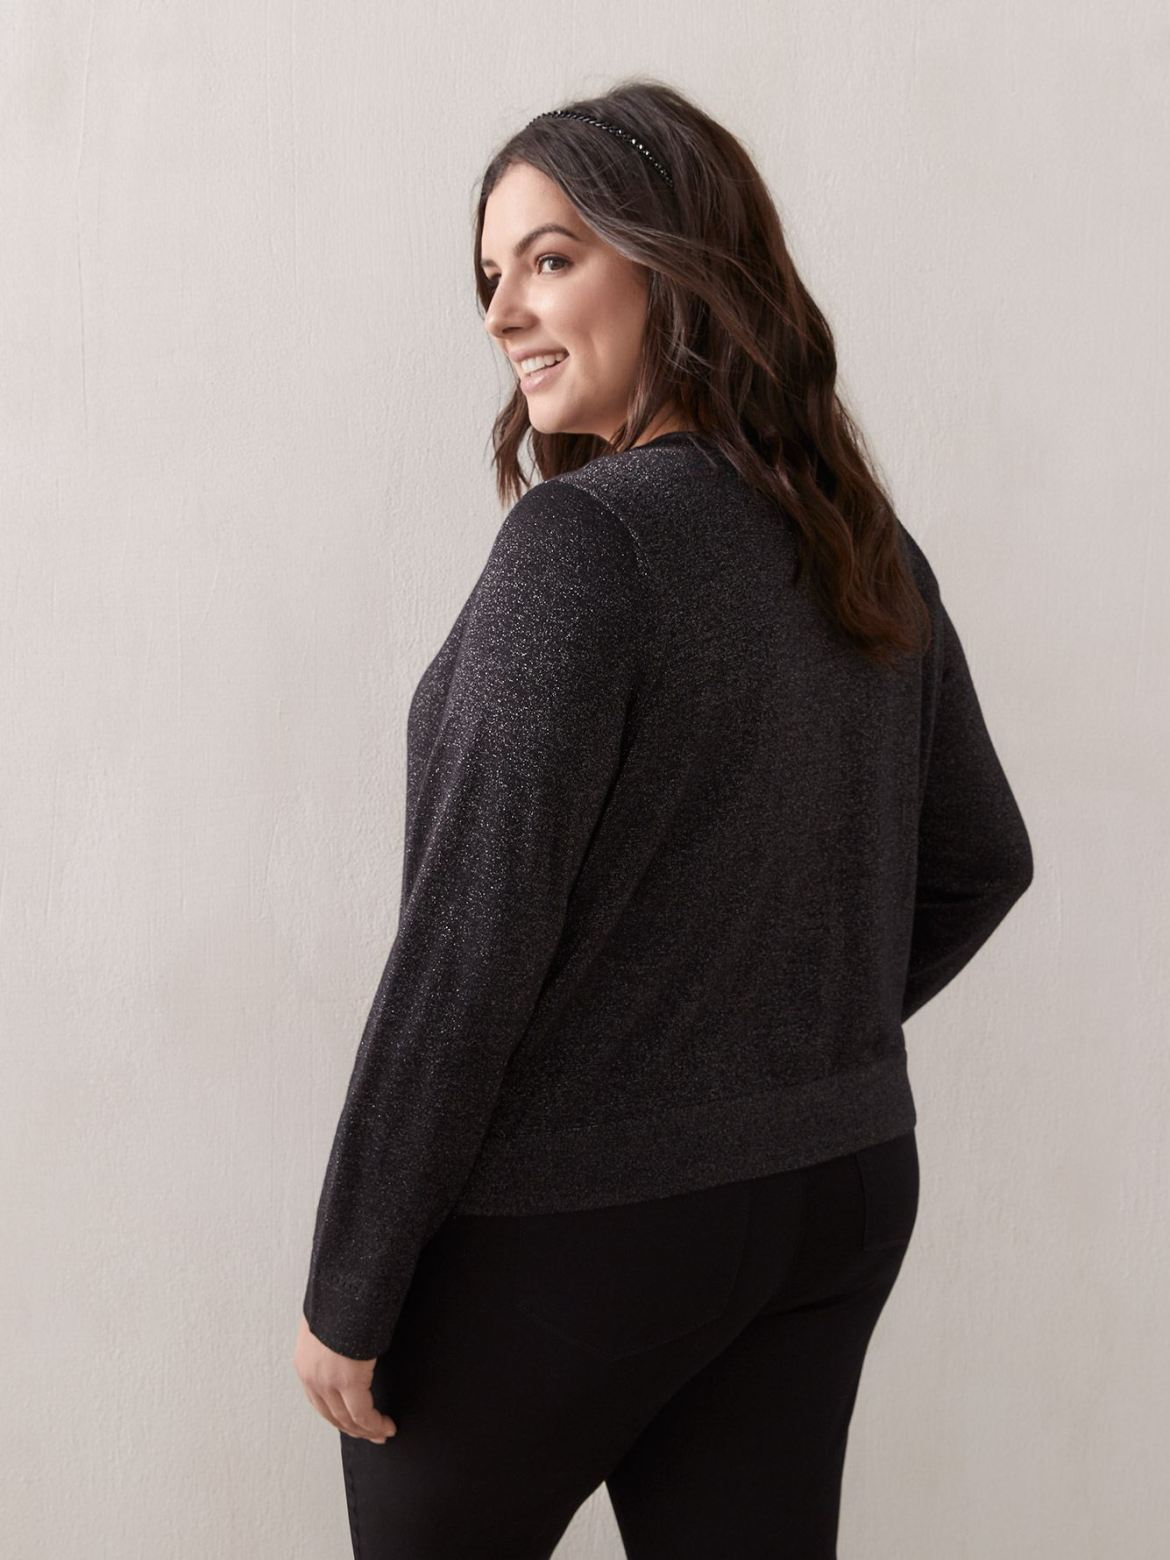 Long-Sleeve Crop Cardigan - In Every Story